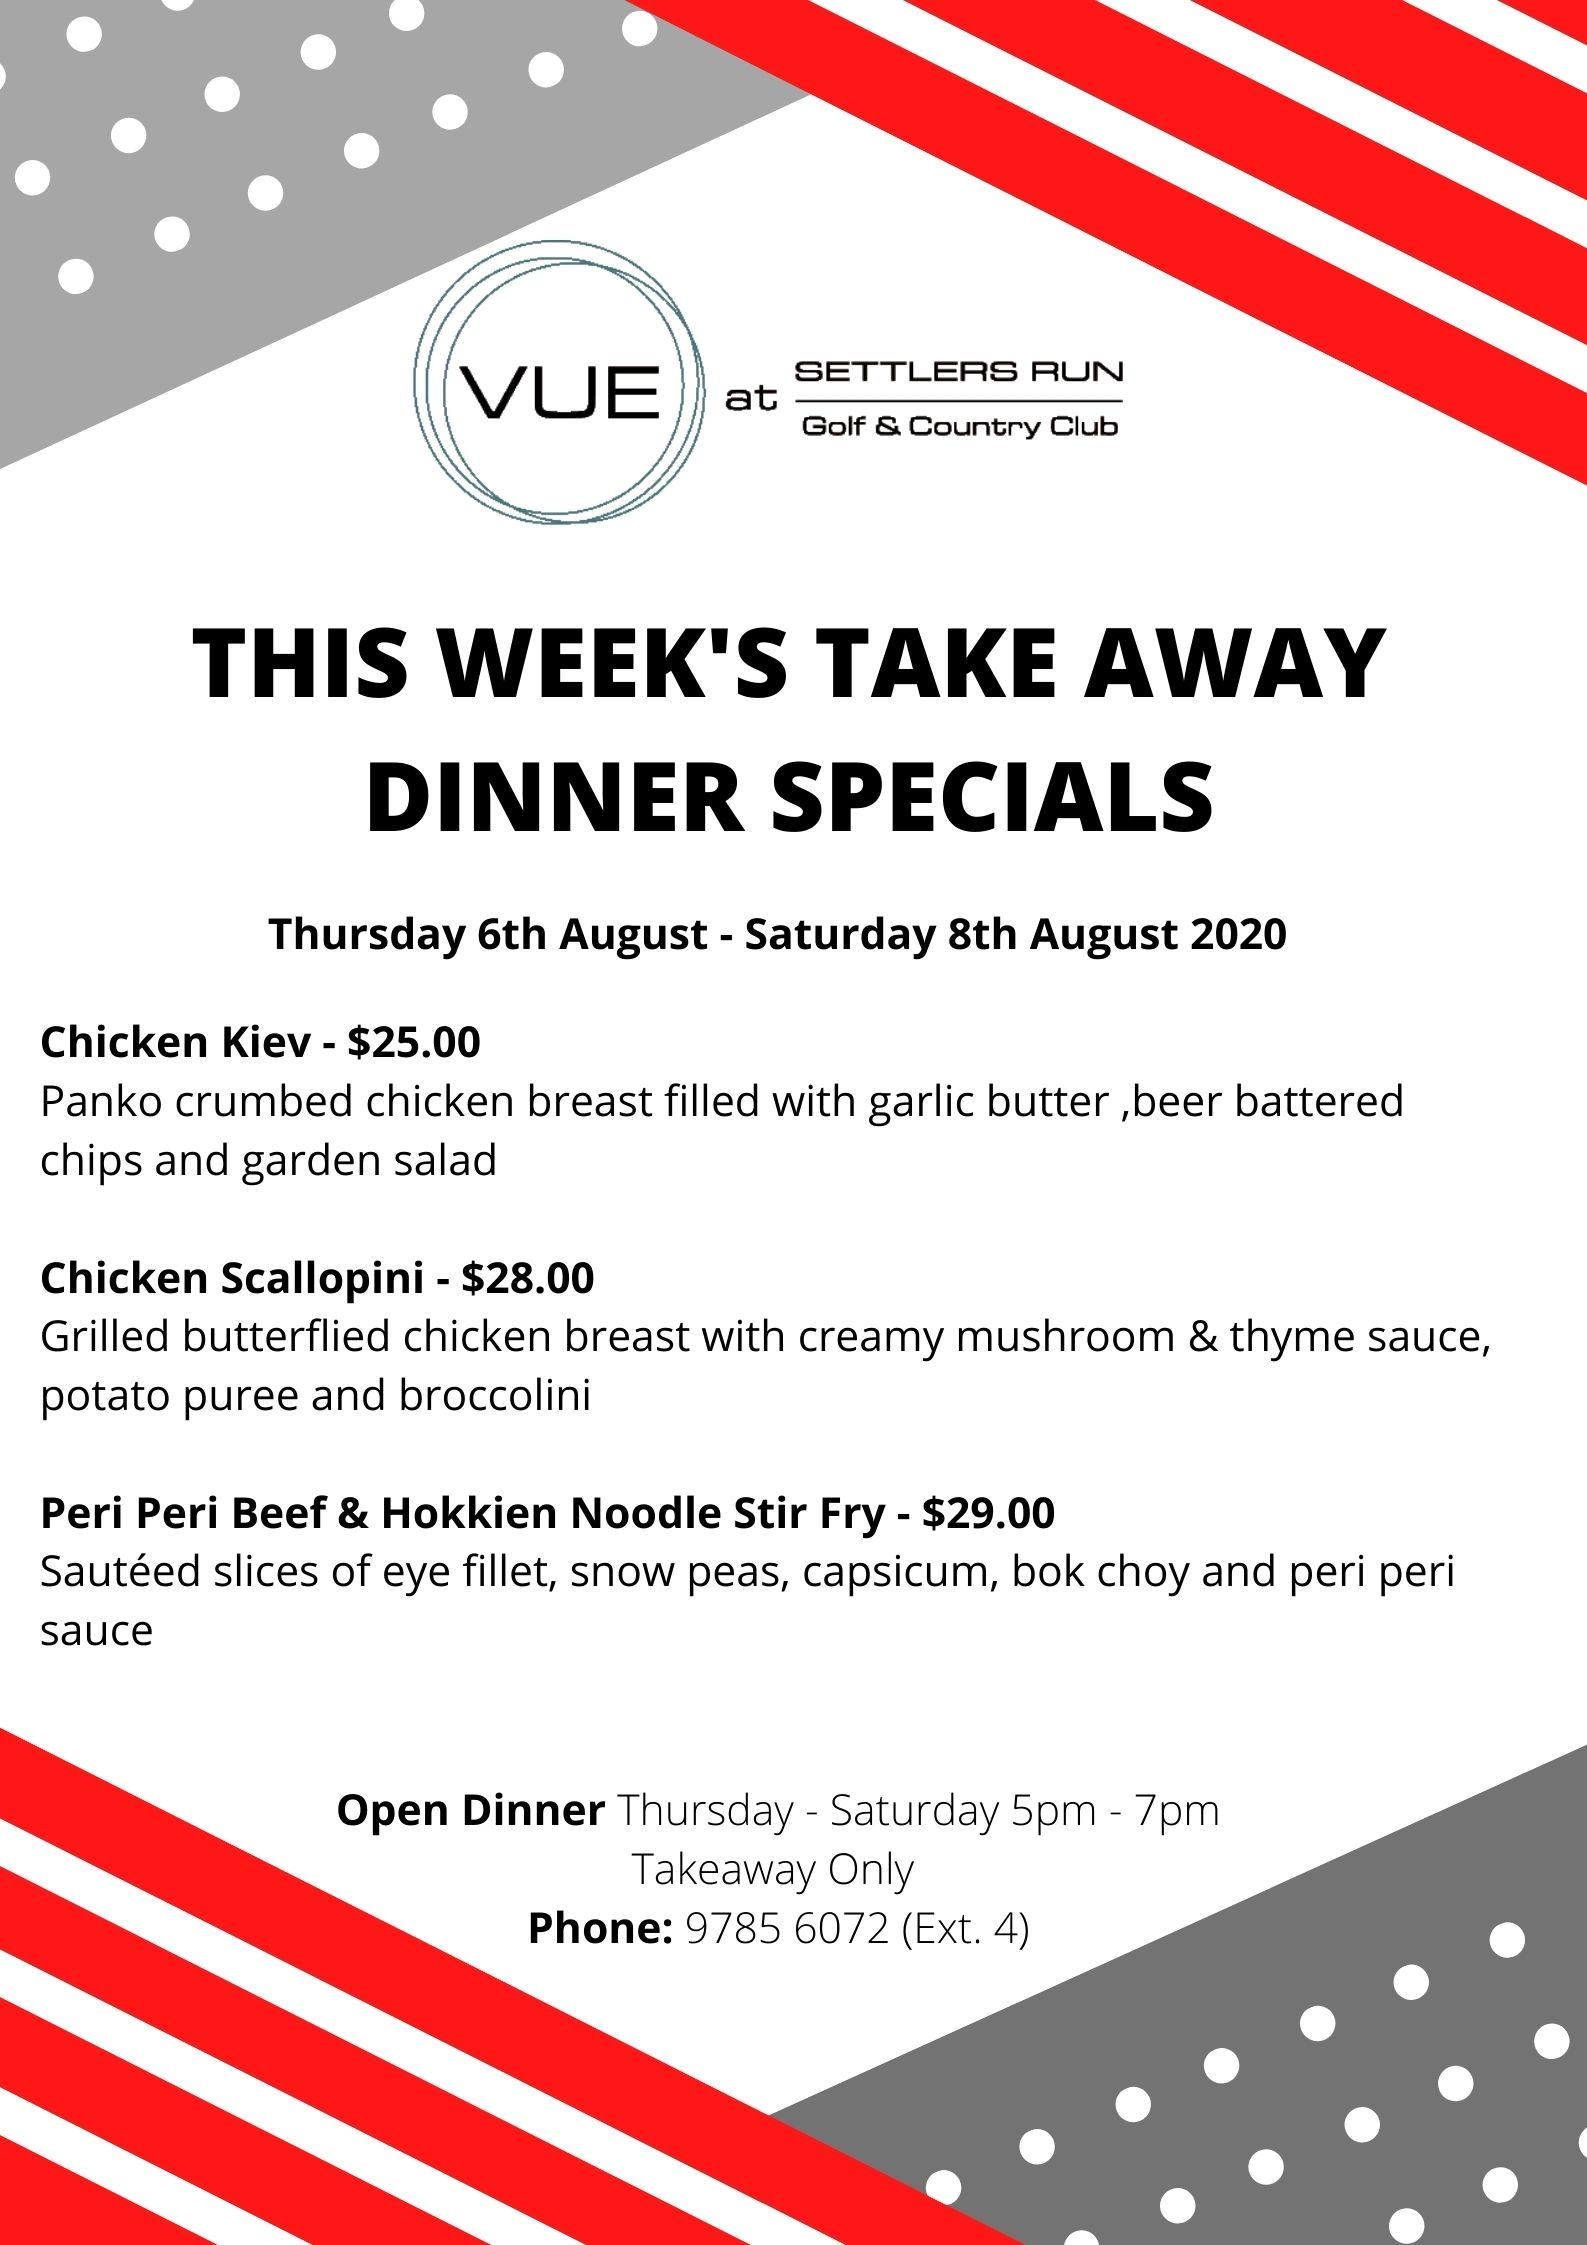 This Week's Take Away Dinner Specials